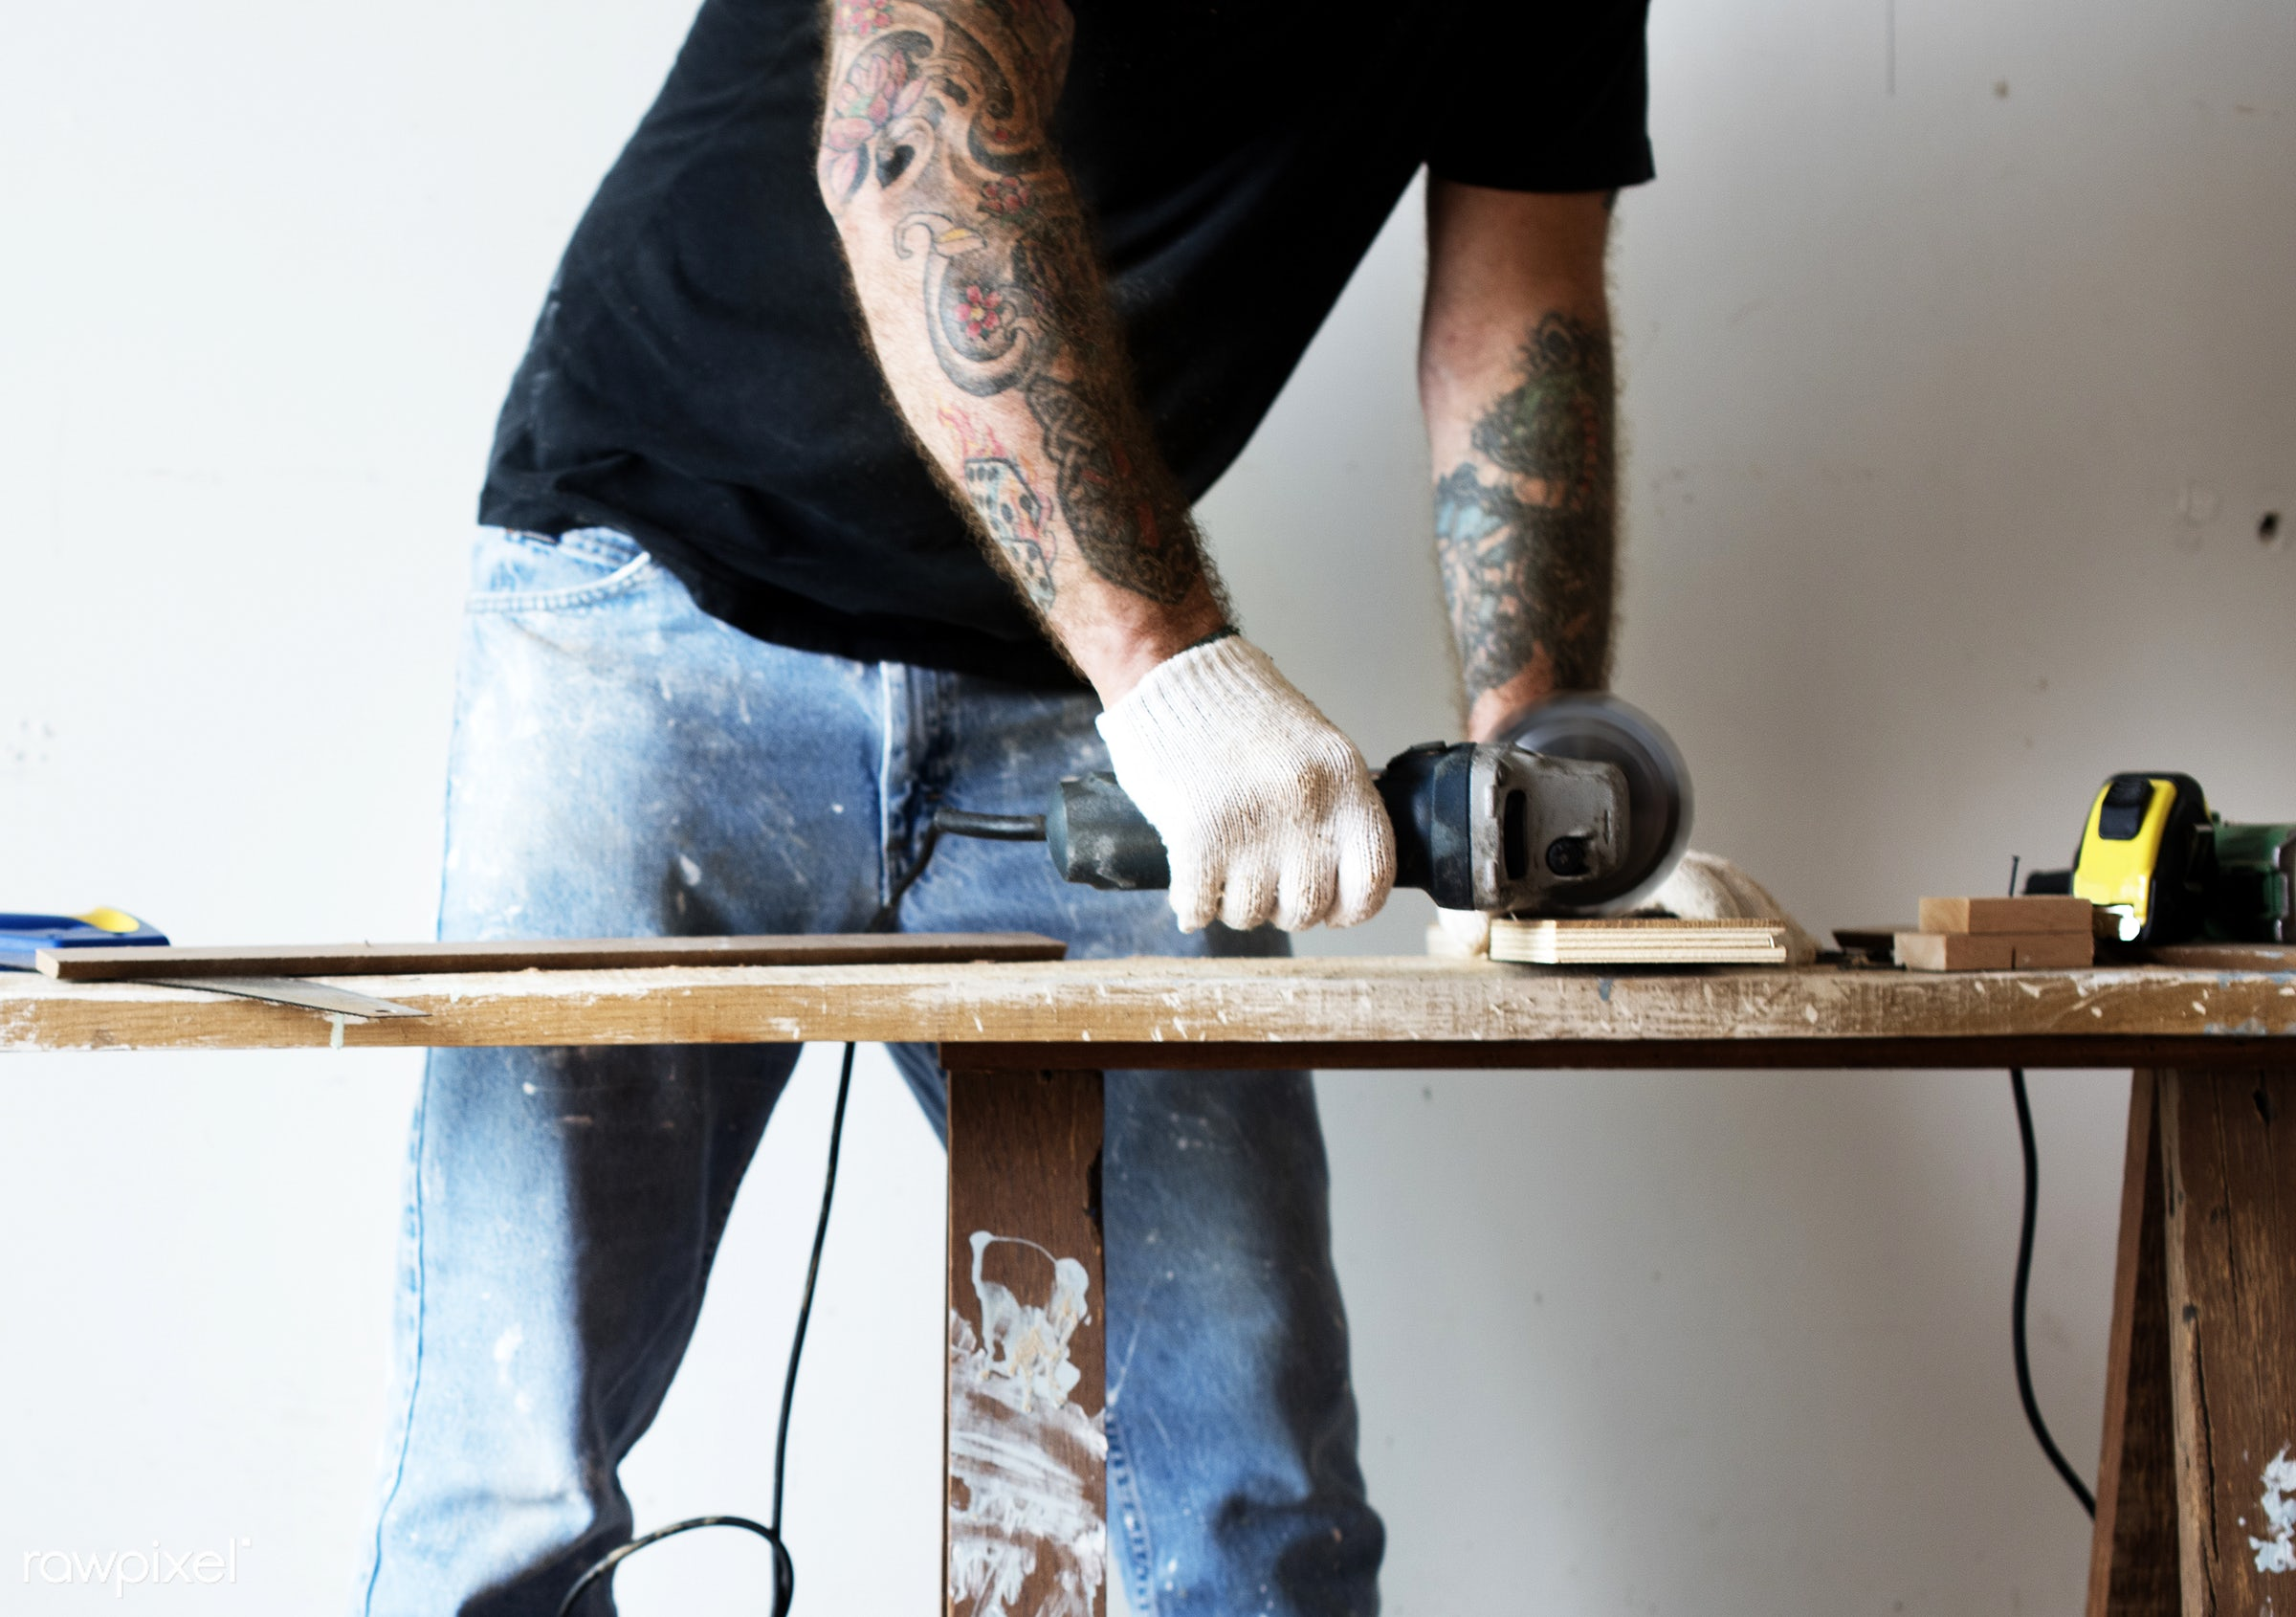 craft, wood, carpentry, tool, plank, equipment, diy, carpenter, craftsman, handyman, worker, repair, tattoo, industry,...